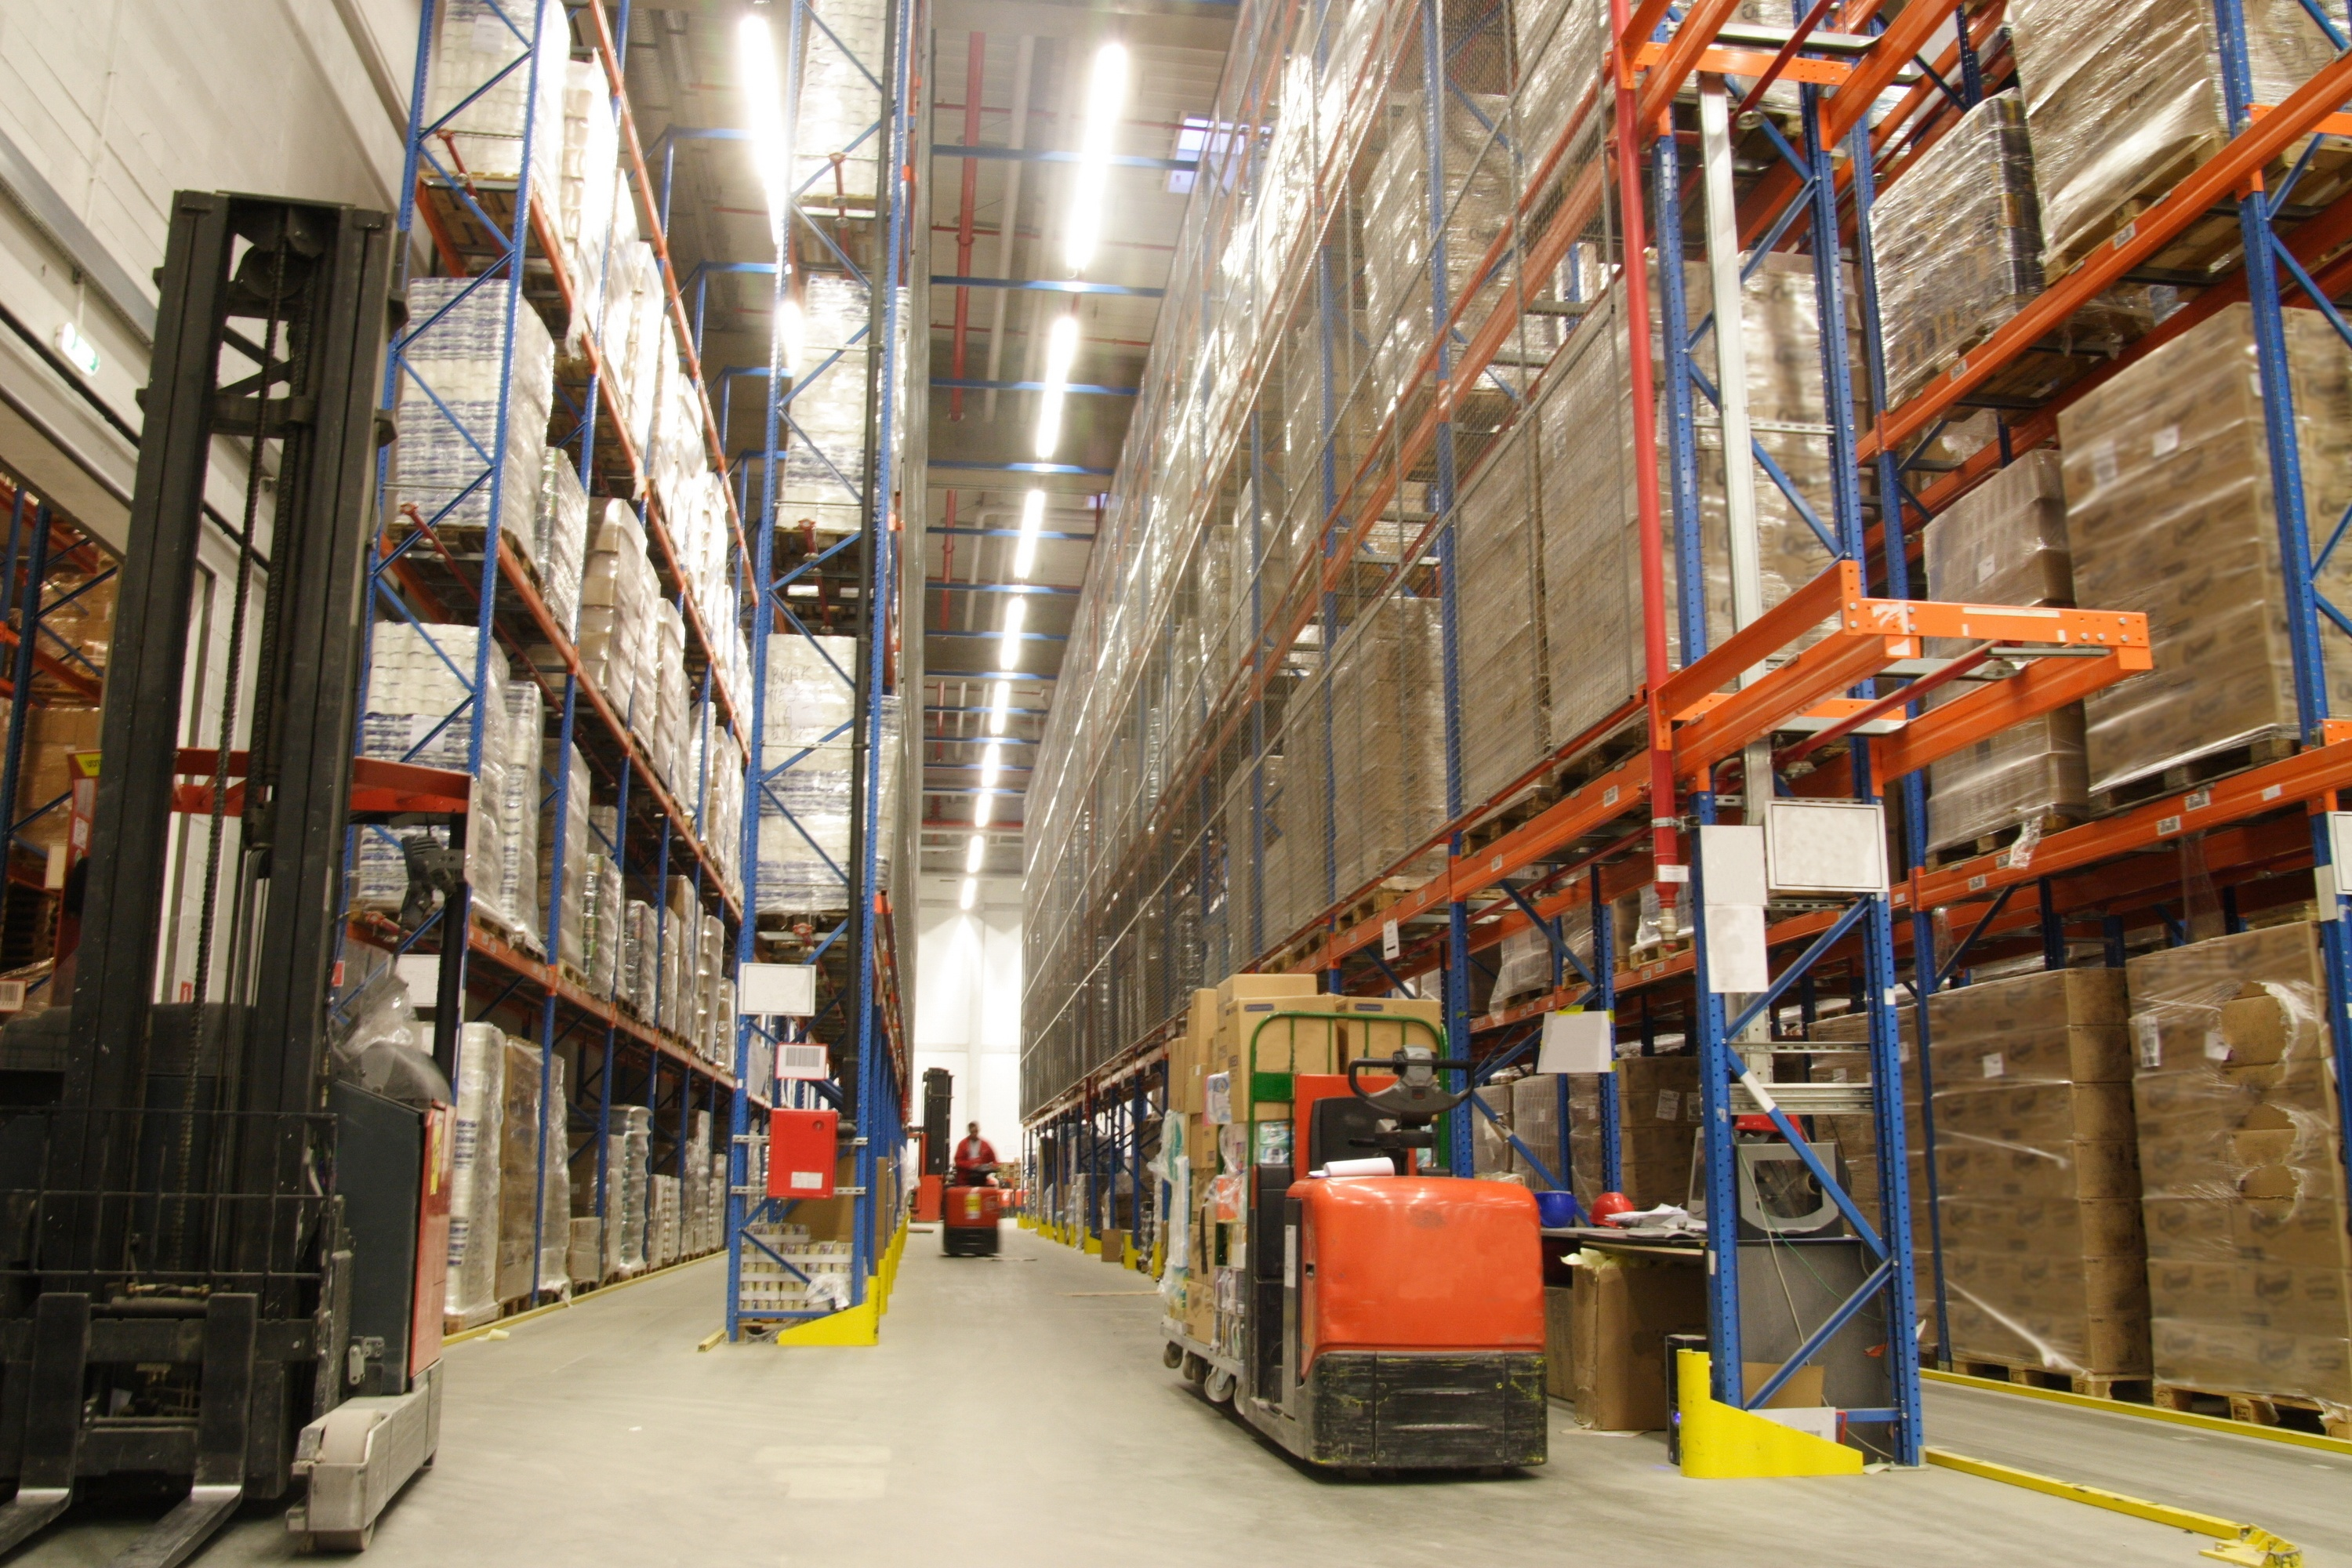 Tall_Warehouse_shelves_with_forklift_-_BigStock_image_-_Large_-_13.03.2013.jpg